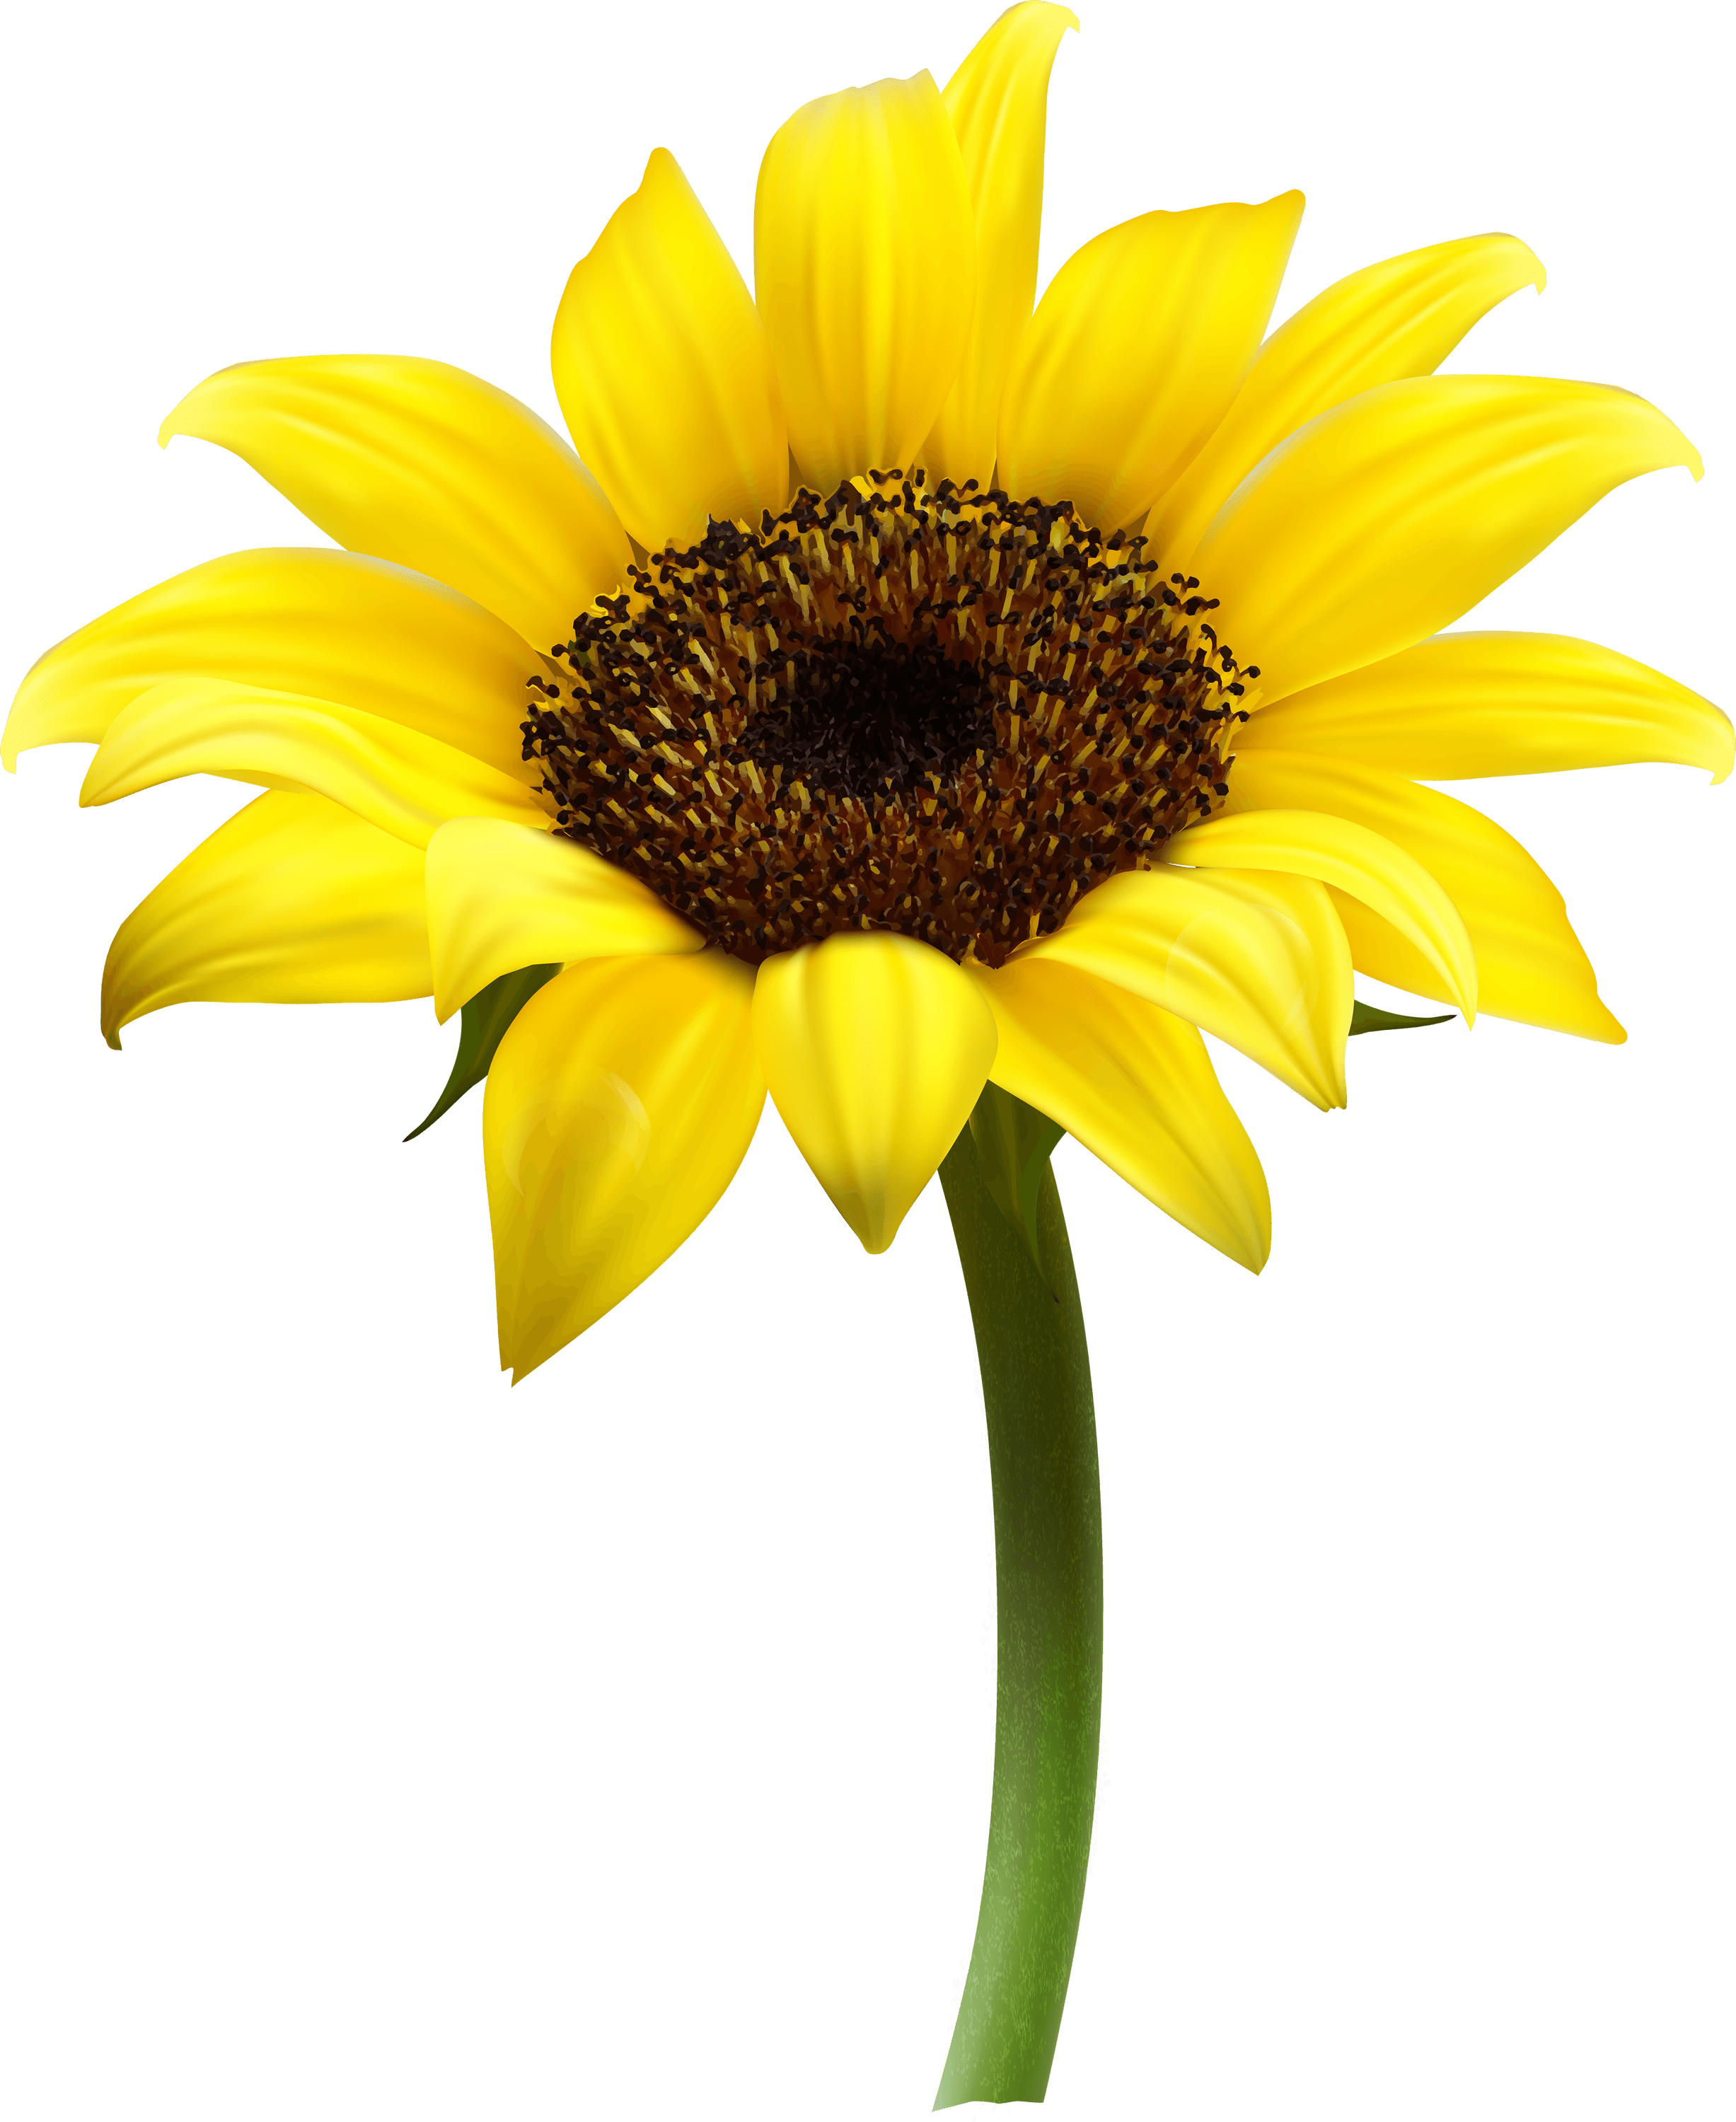 Sun flower seed clipart png royalty free Sunflower Single transparent PNG - StickPNG png royalty free